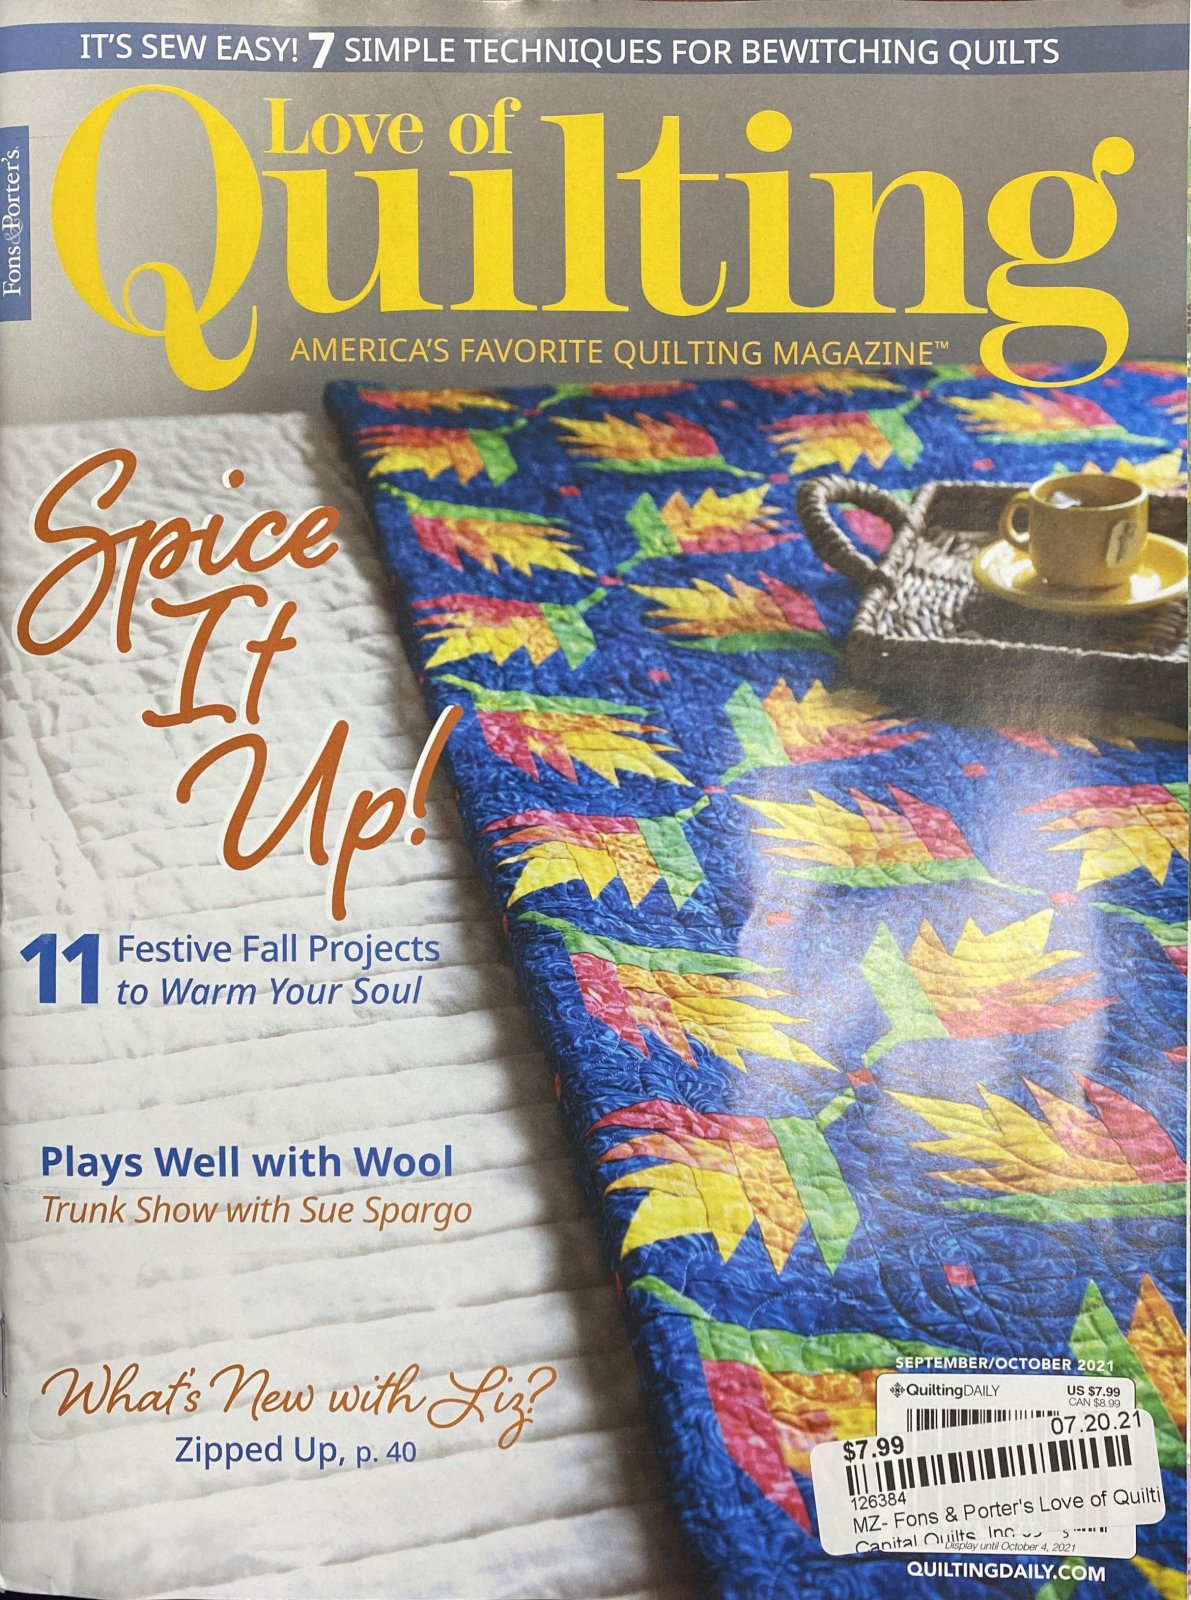 MZ- Fons & Porter's Love of Quilting Sep/Oct 2021